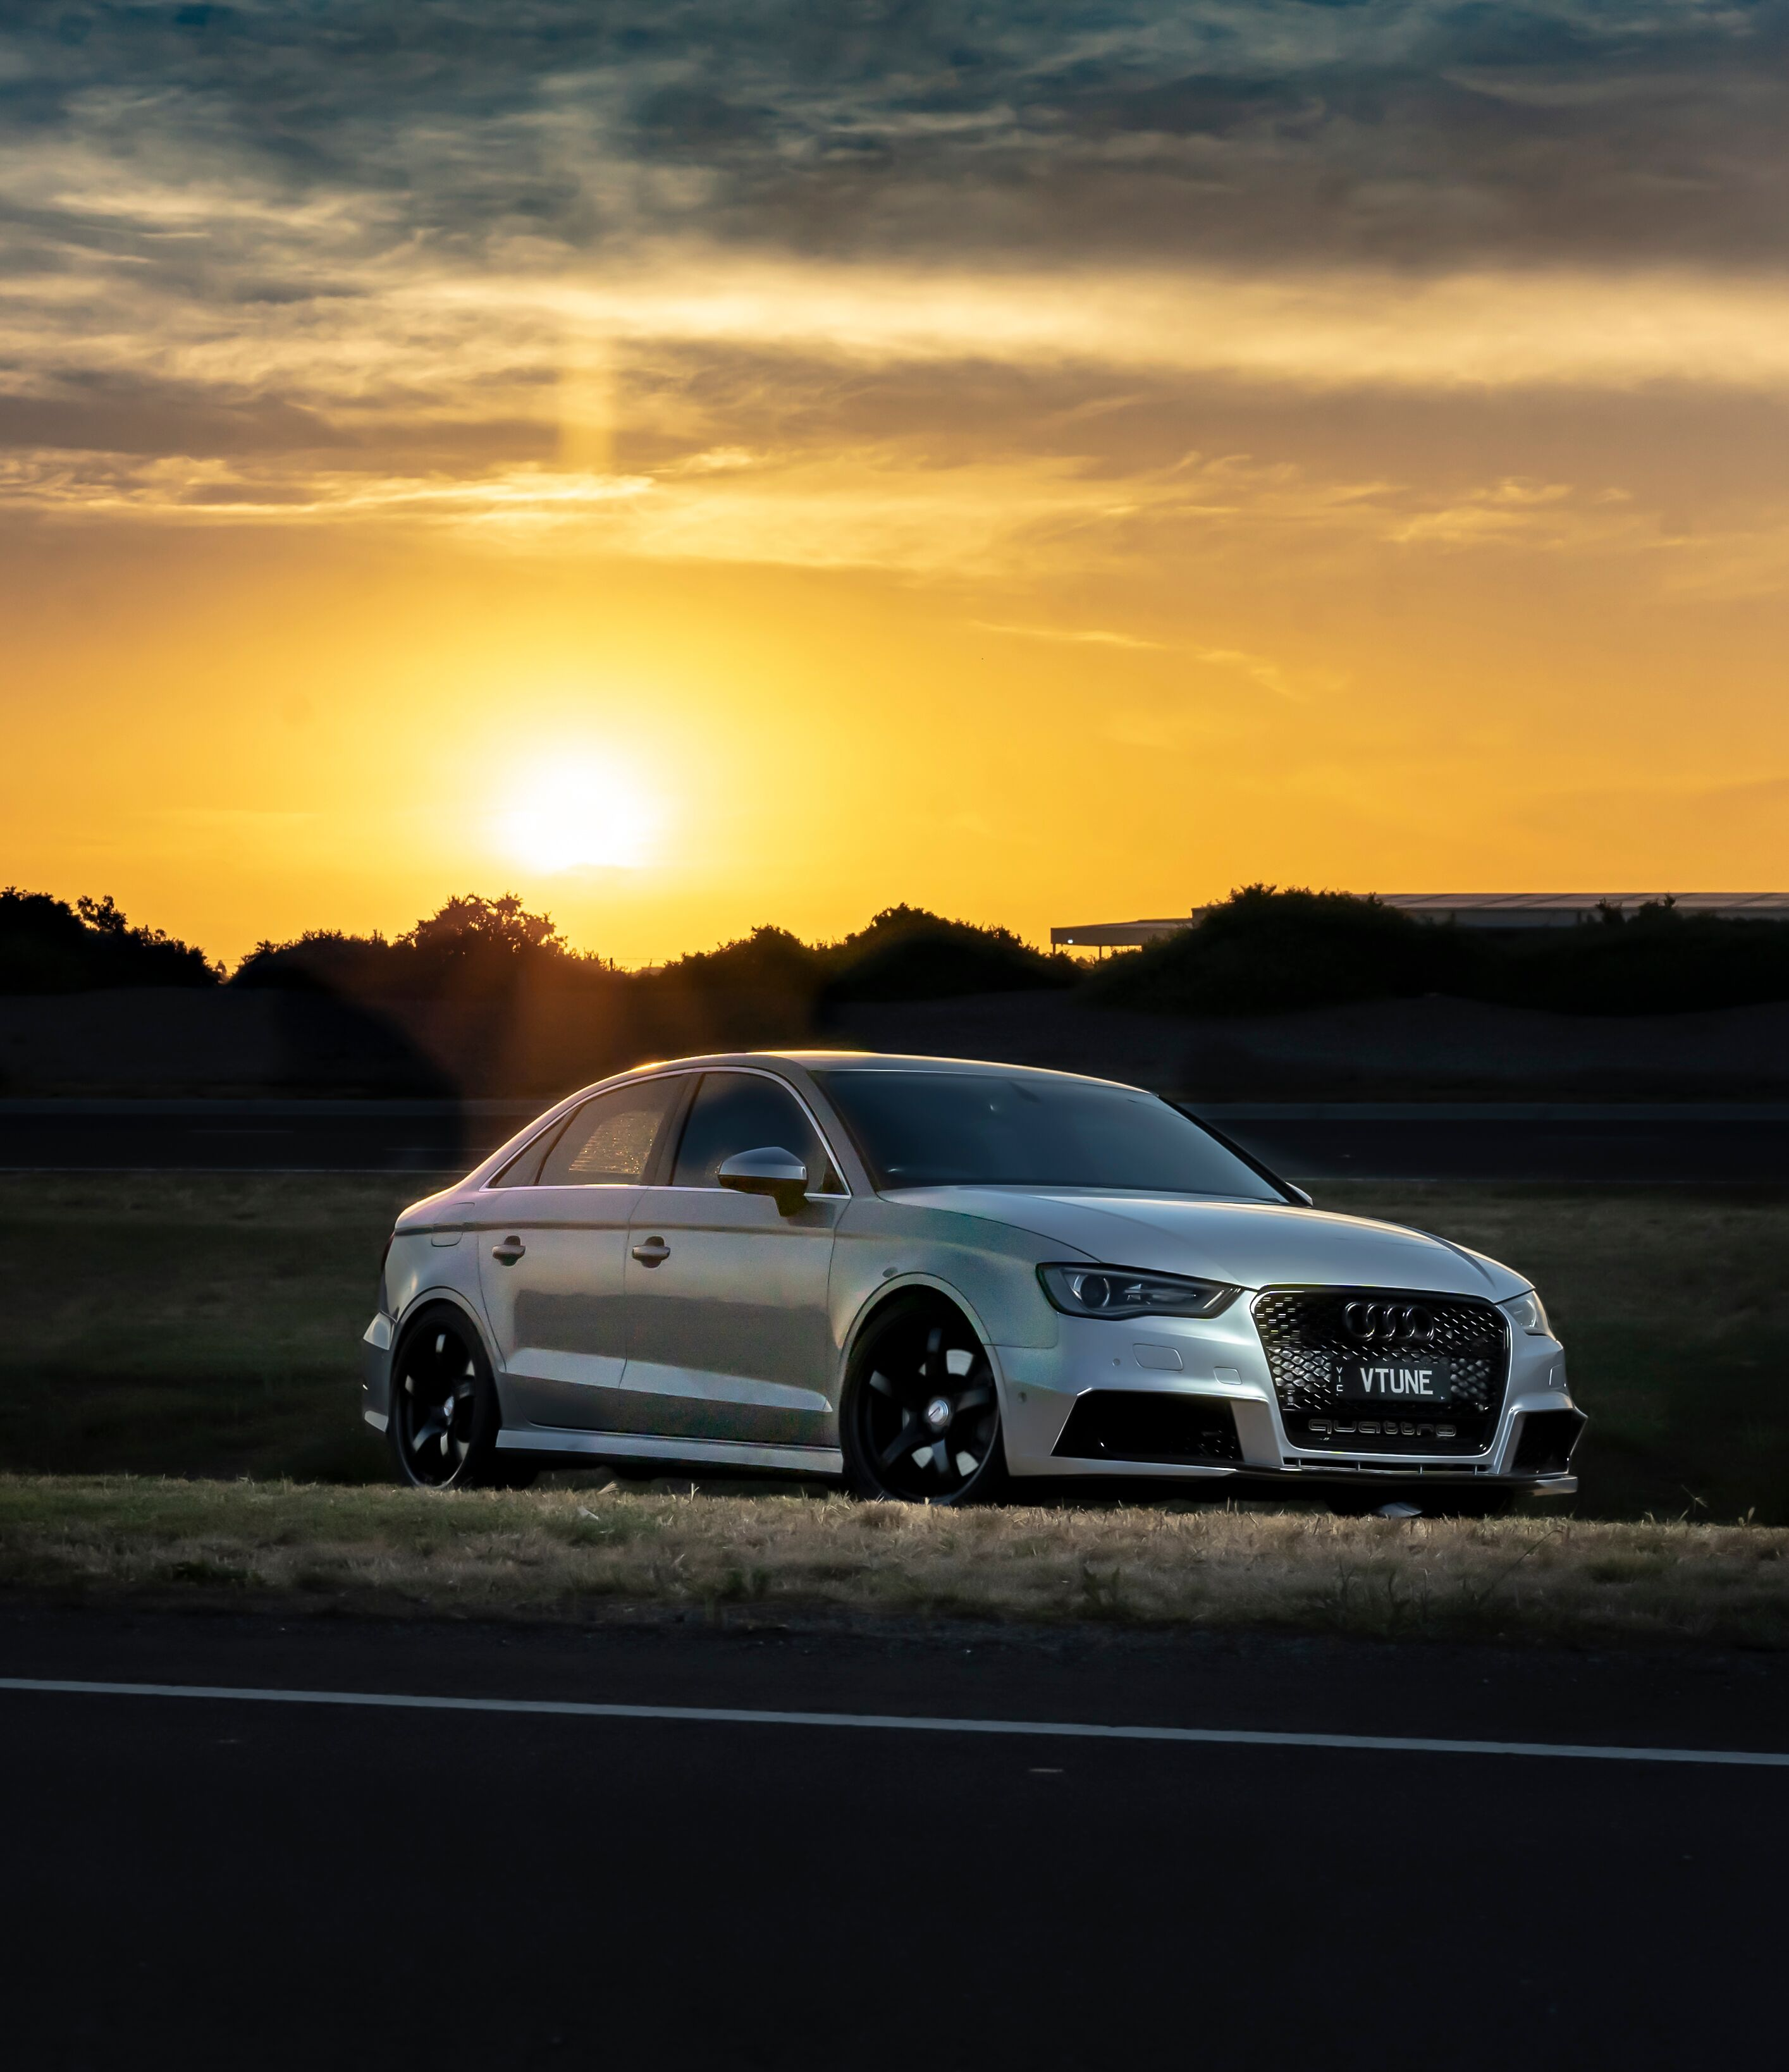 Audi S3 Sunset V-Tech Australia